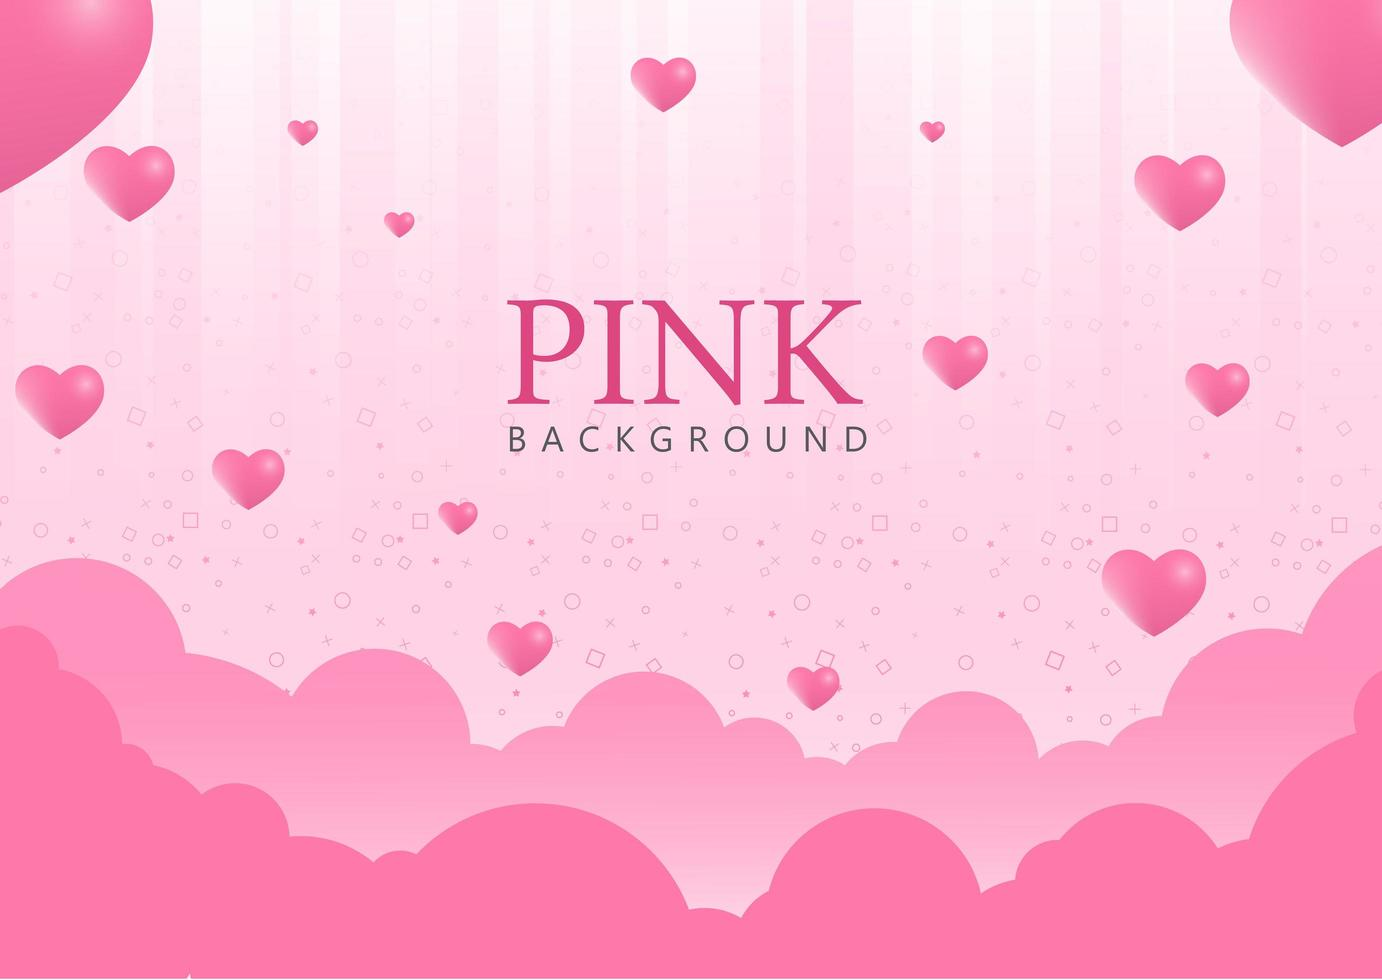 Pink Background with Heart Balloons vector